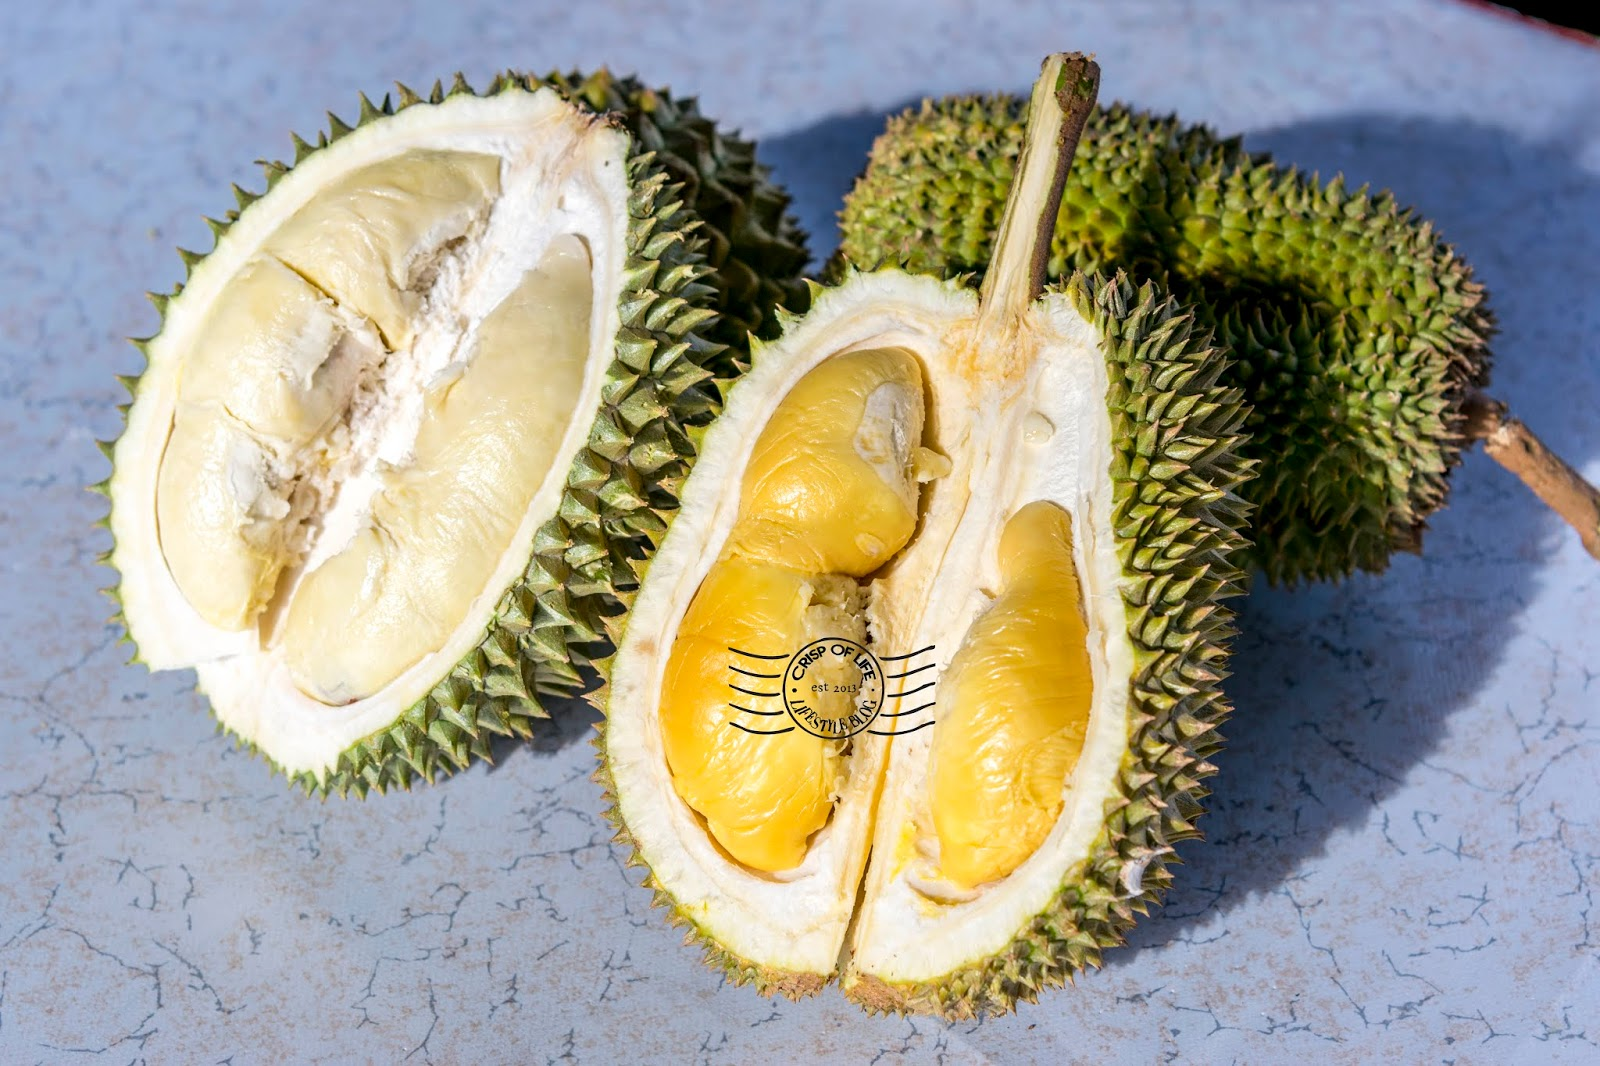 Eat All Durian As You Like In Iconic Hotel Penang For RM 45nett Per Person